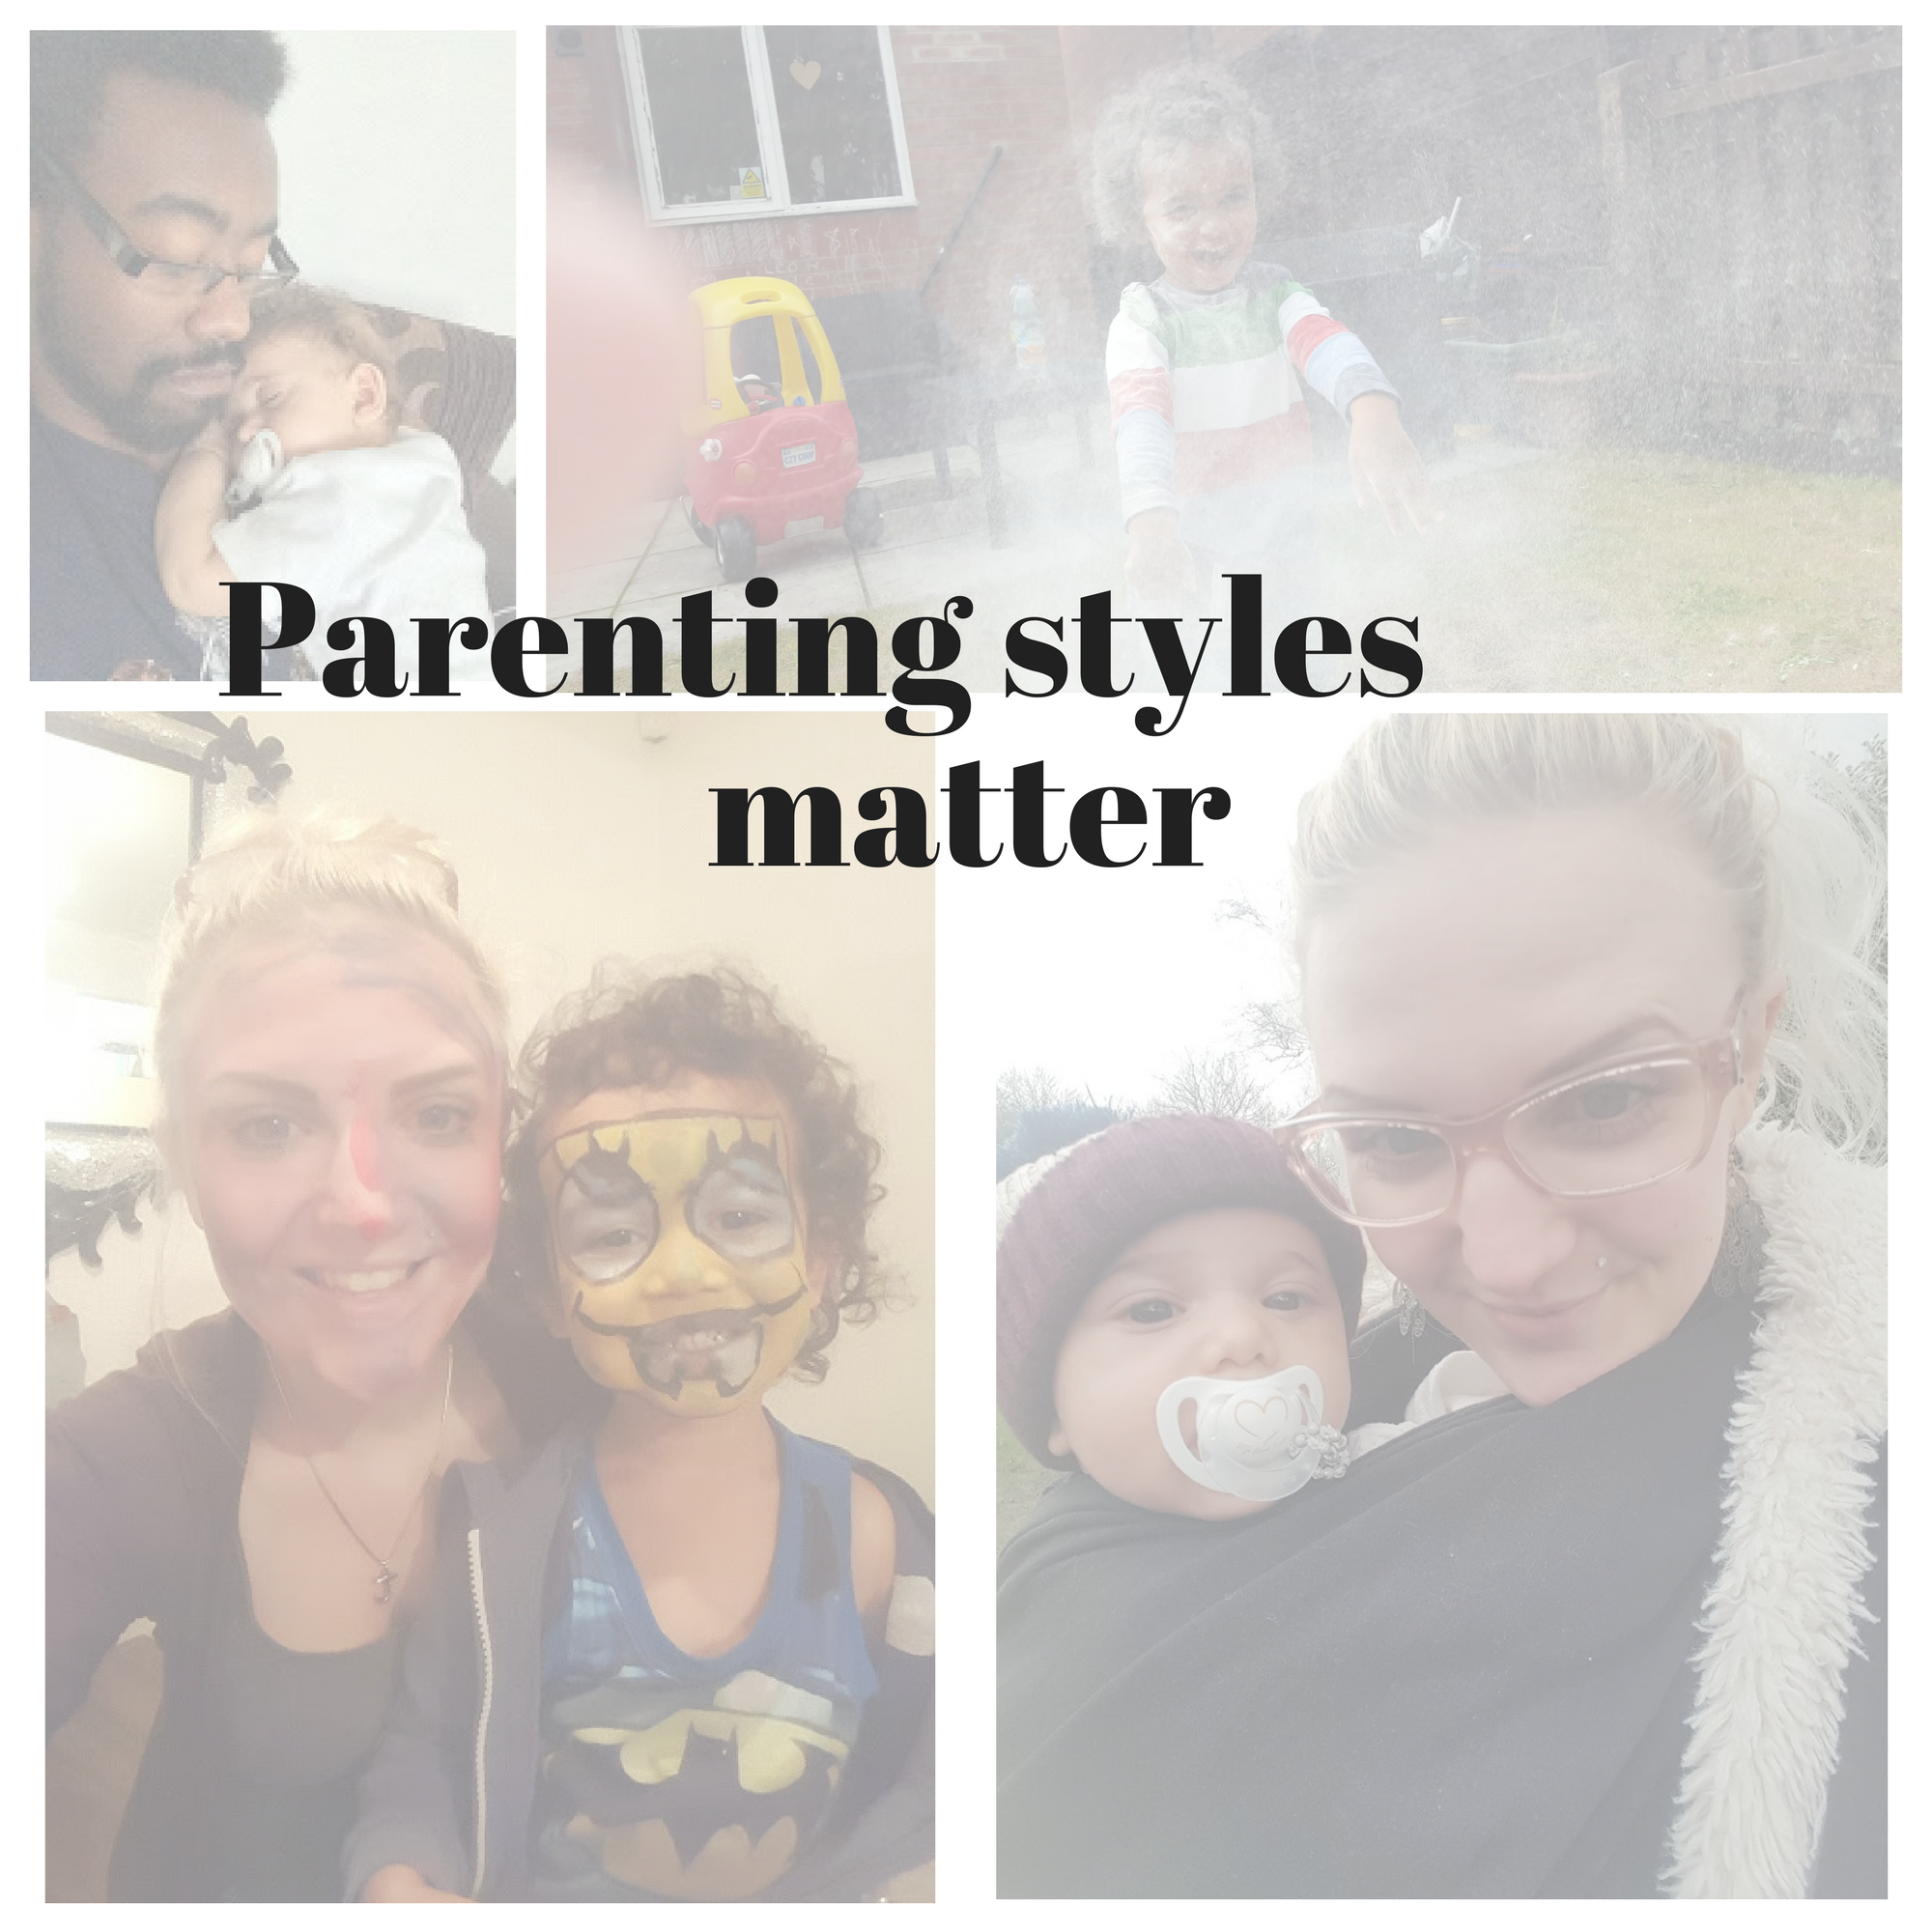 Why Parenting Styles Matter When >> Parenting Styles Matter Raw Childhood